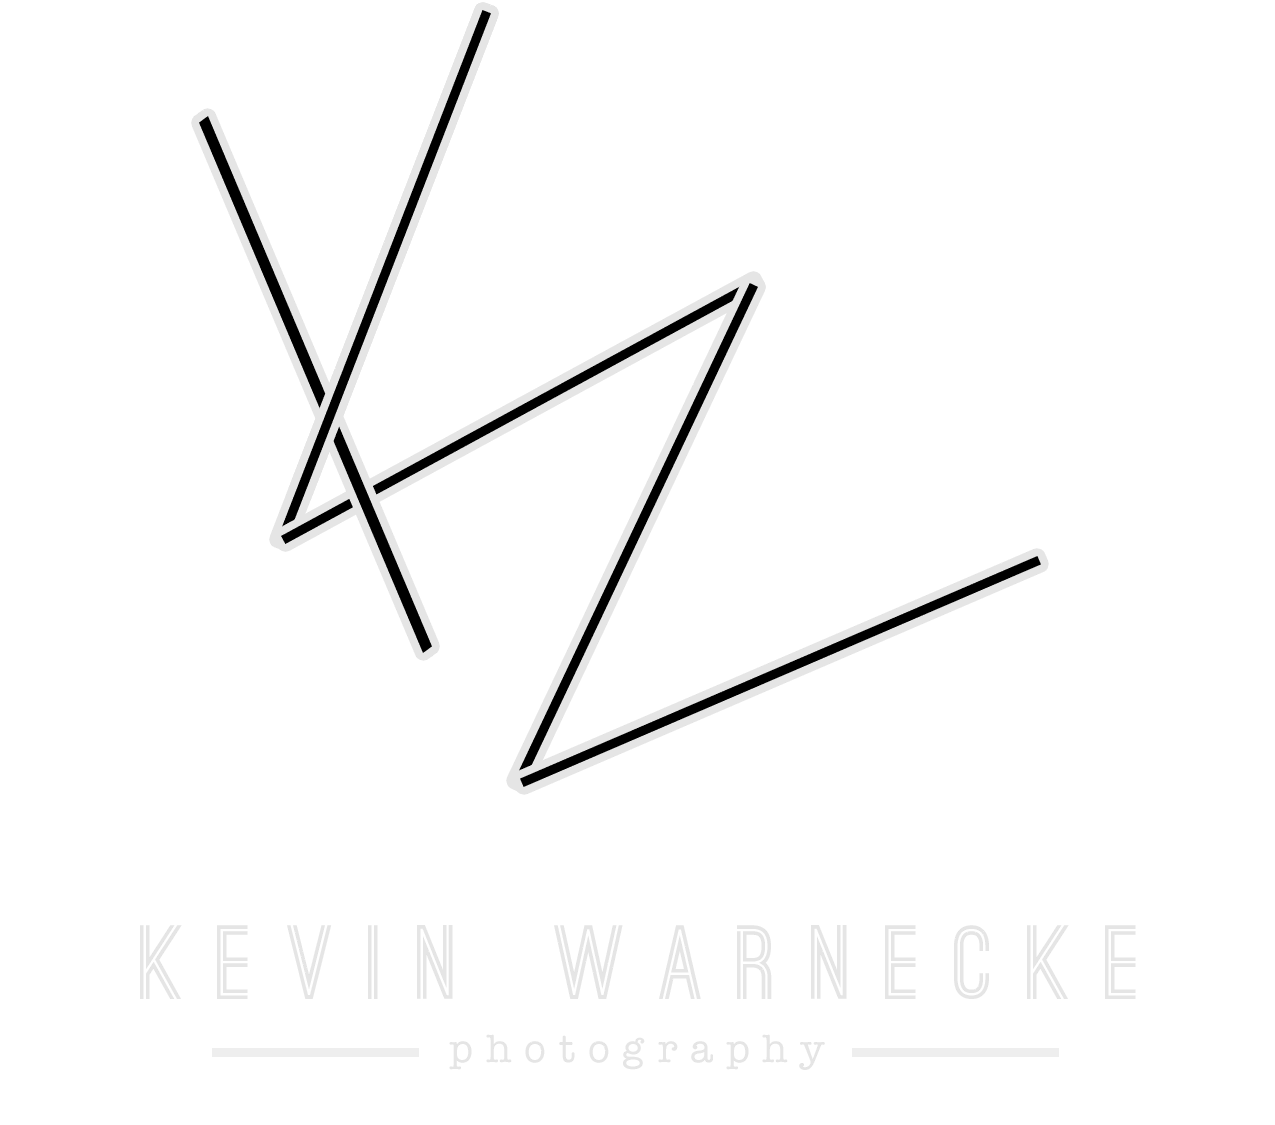 Kevin Warnecke Photography